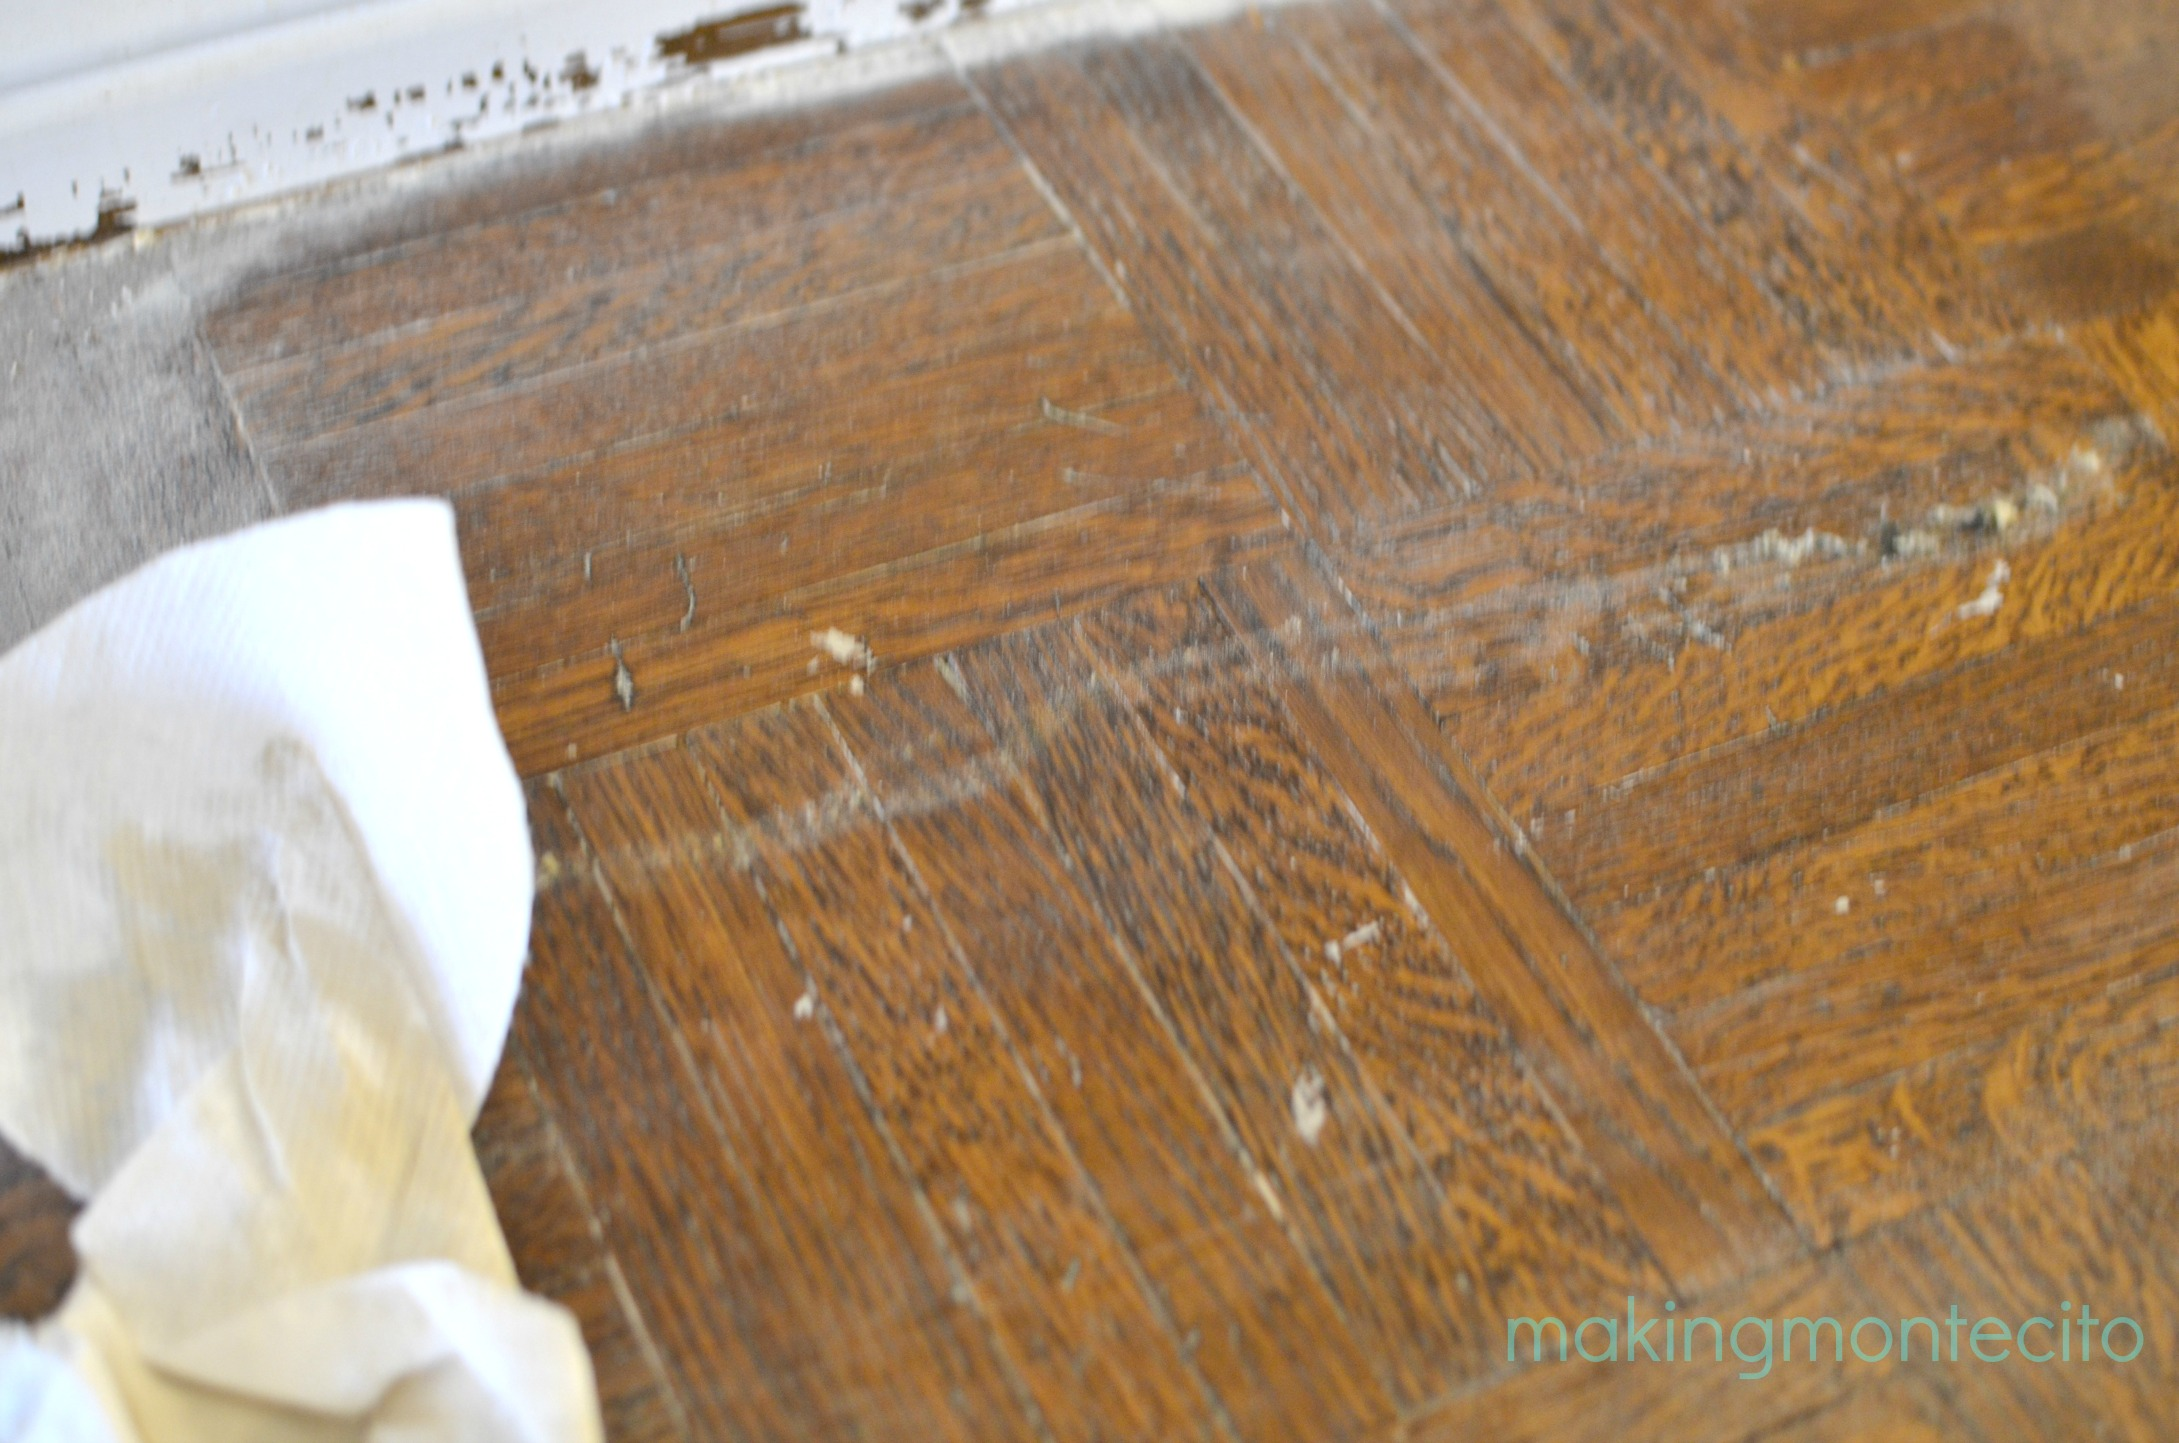 How to remove paint from hardwood floors - Making Montecito Paint Removal Process 2